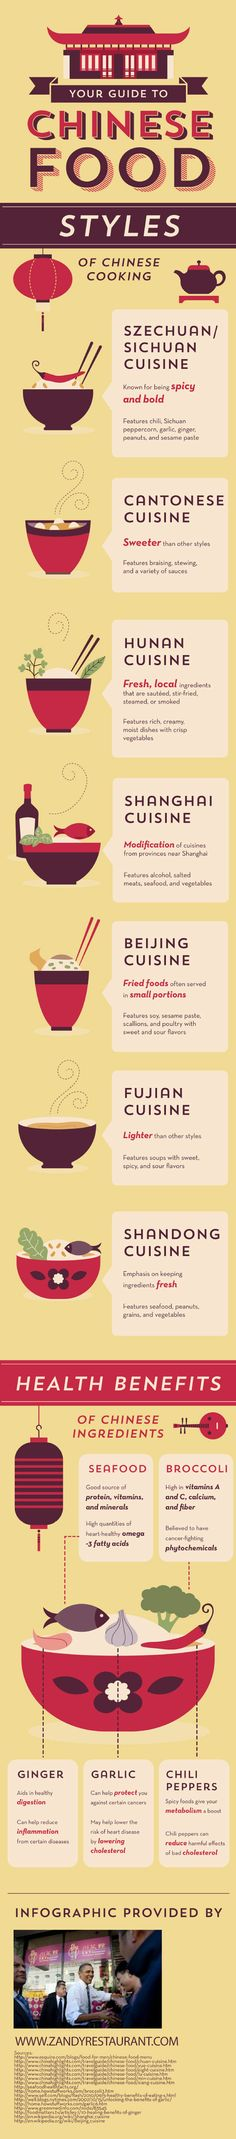 Chinese Food Styles Guide [Infographic]